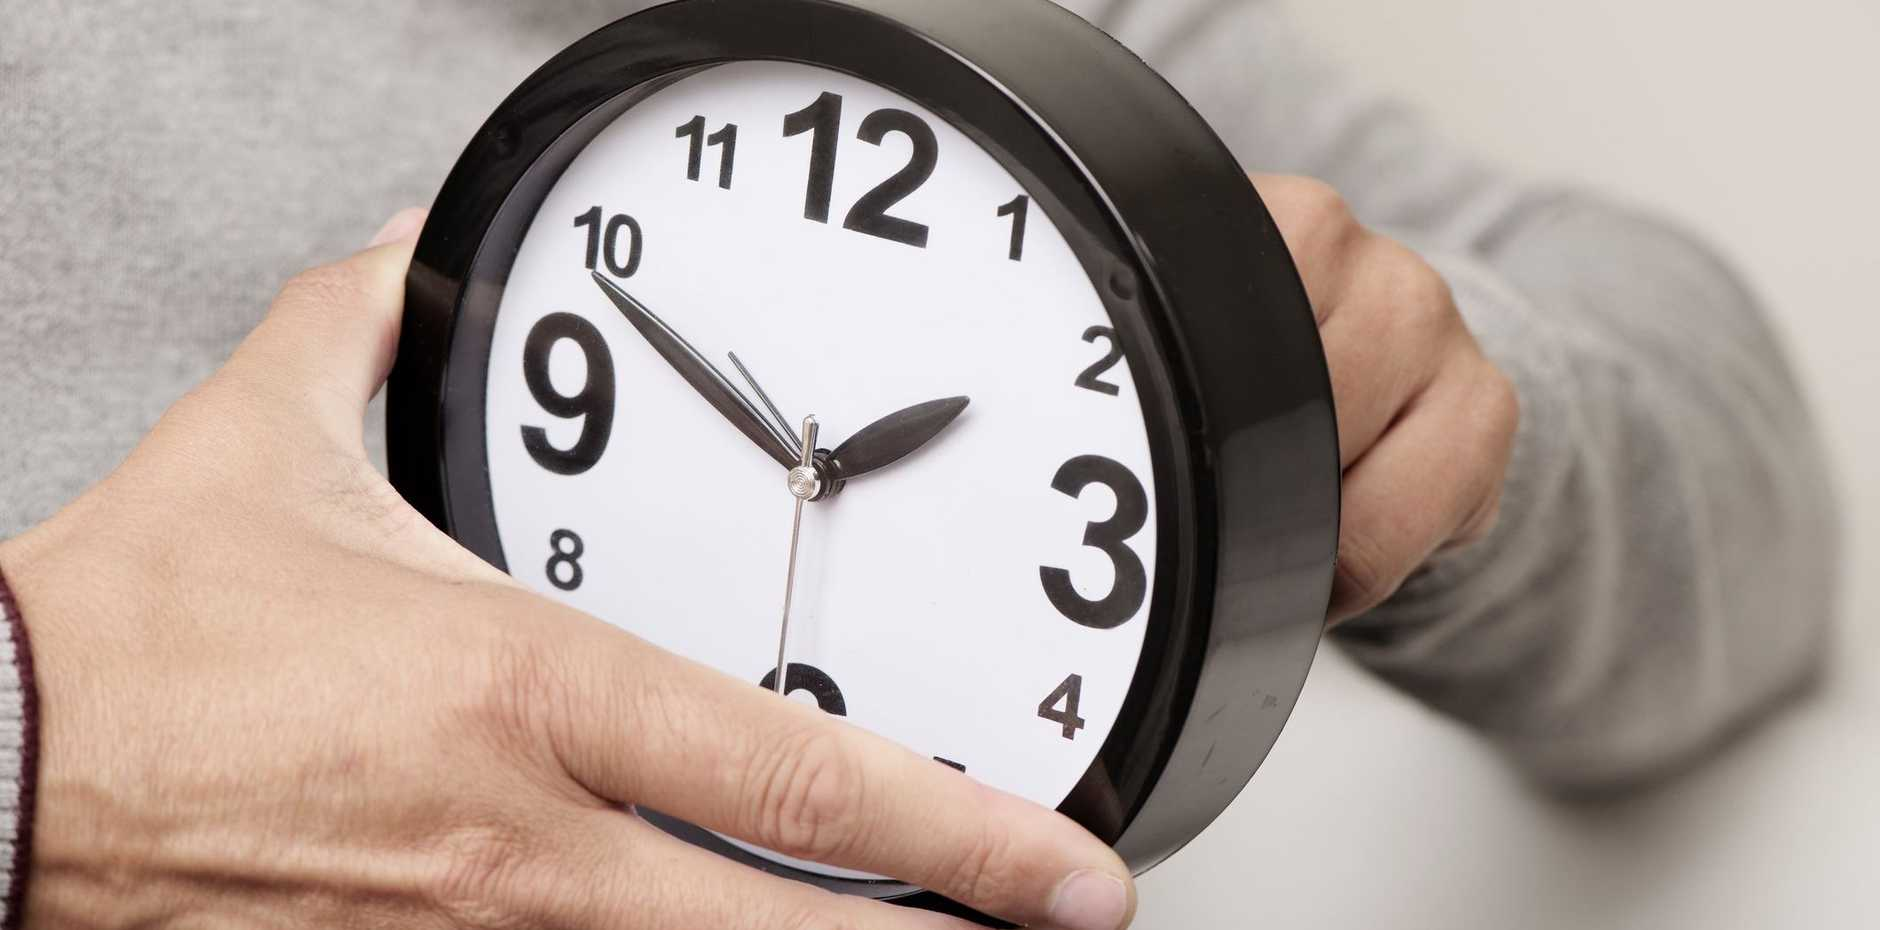 DAYLIGHT SAVING: Sunday is the time to move your clocks forward.